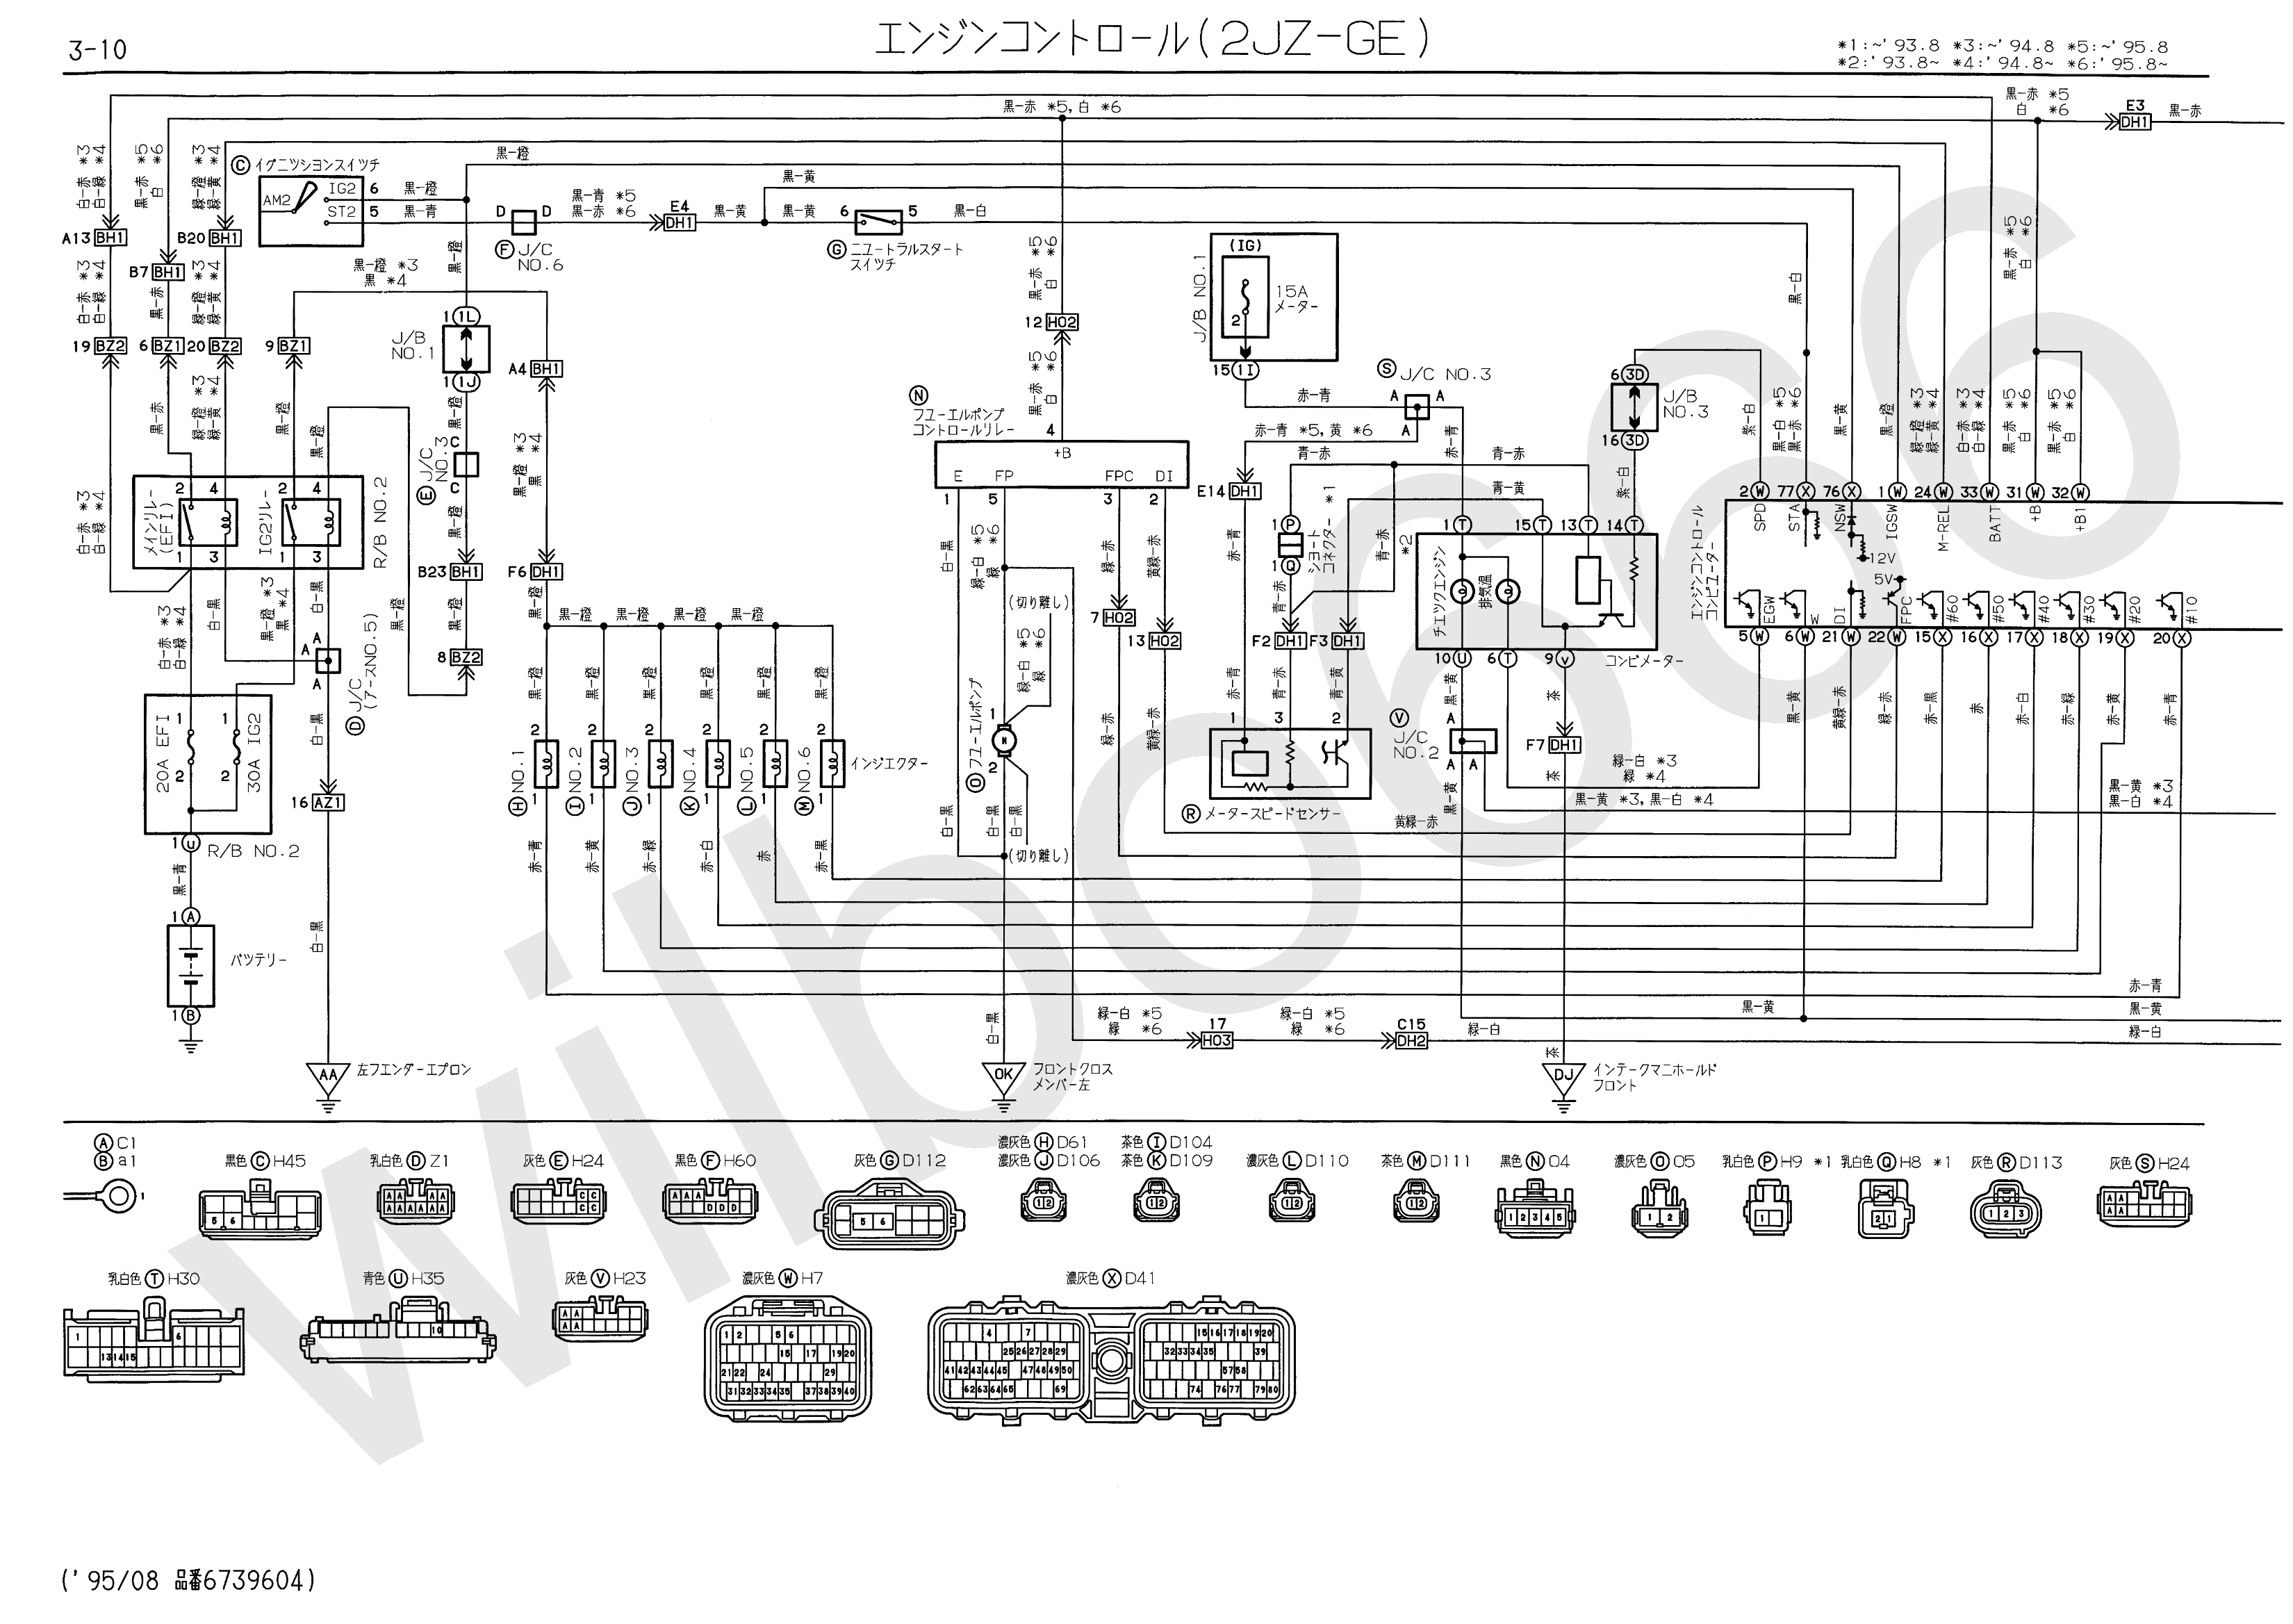 JZS14%23%2C UZS14%23 Electrical Wiring Diagram 6739604 3 10 wilbo666 2jz ge jzs147 engine wiring ge motor starter wiring diagram at edmiracle.co